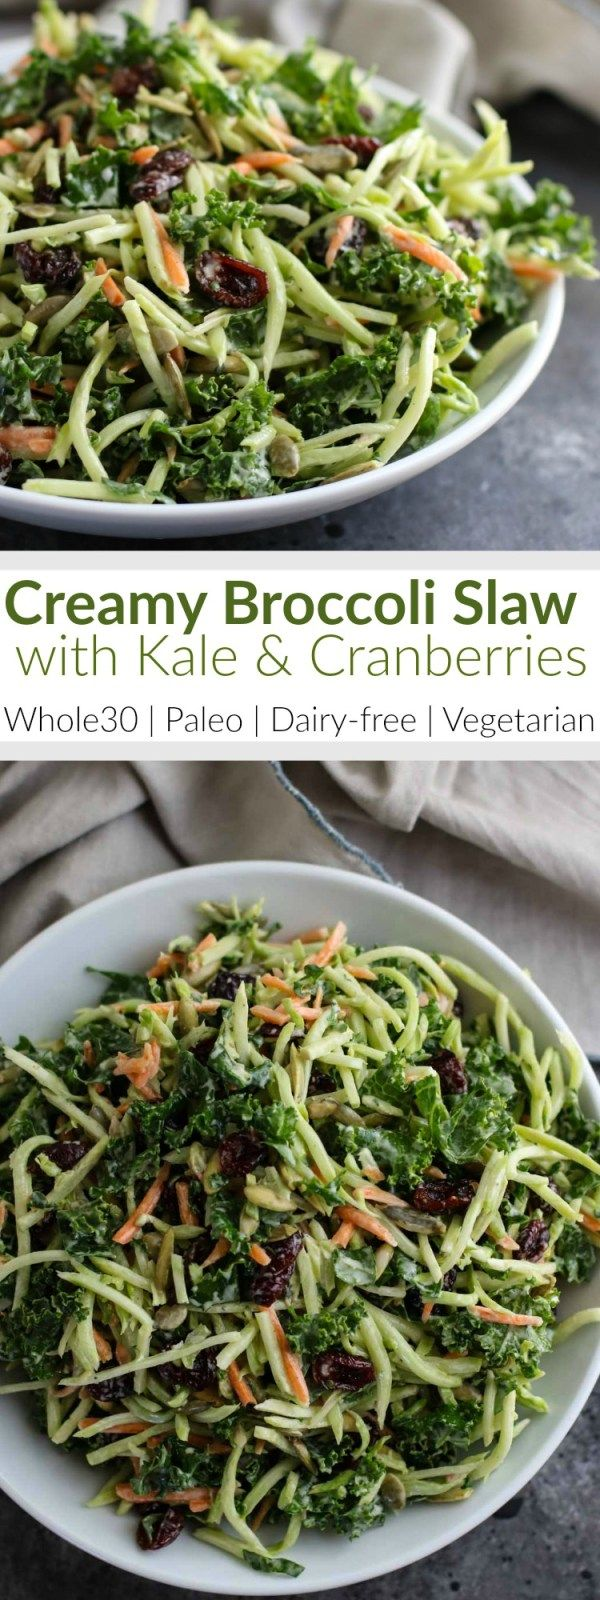 Creamy Broccoli Slaw | Crunchy and convenient bagged broccoli slaw makes this a cinch to whip up for an easy Whole30-friendly weeknight side or a potluck dish to pass. | The Real Food Dietitians | http://therealfoodrds.com/creamy-broccoli-slaw/